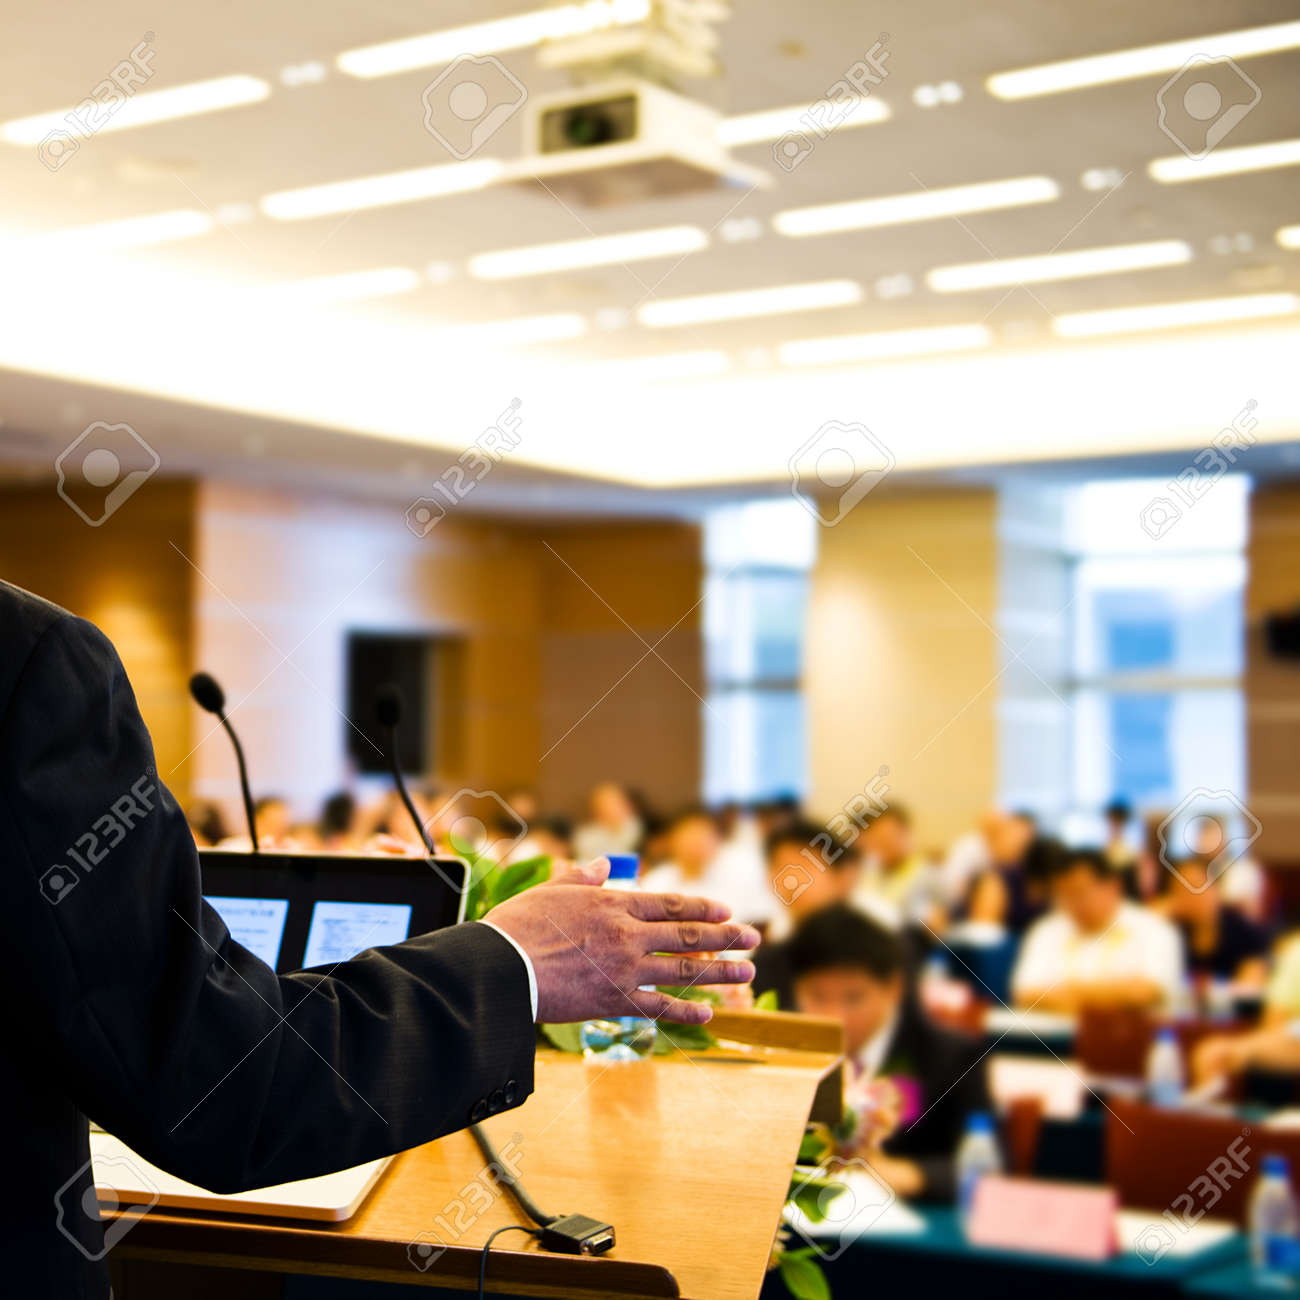 Business man making speech at a conference hall. Stock Photo - 37297008